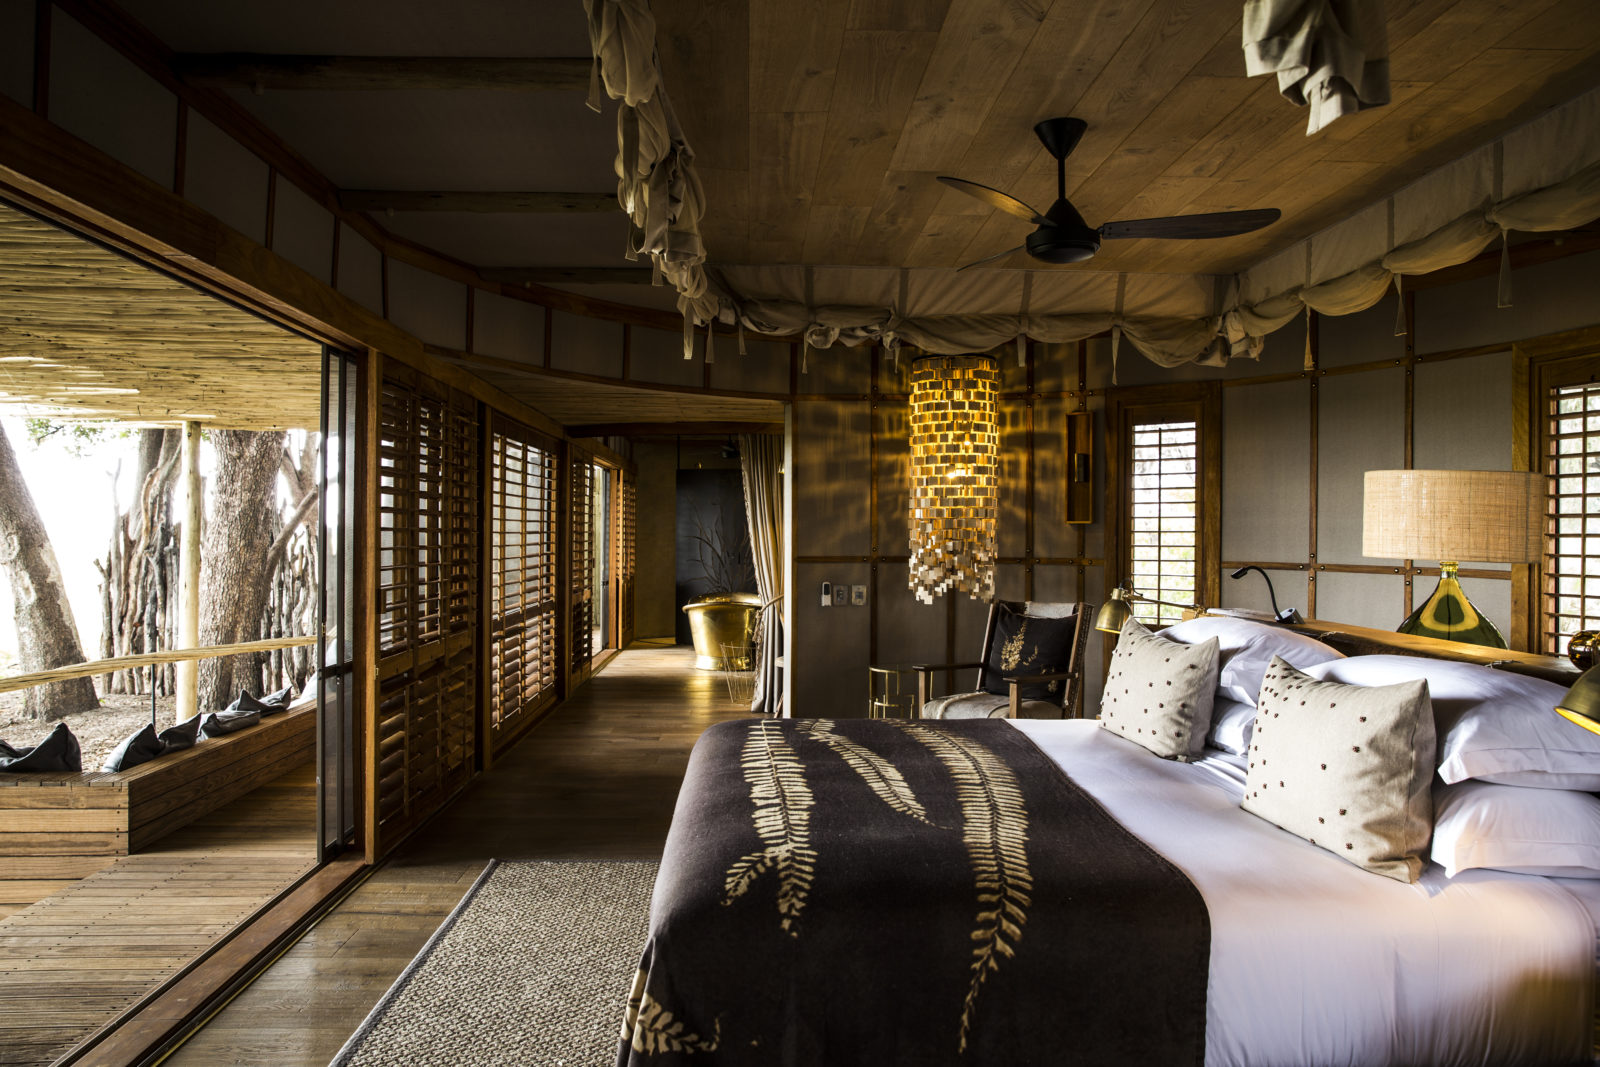 The stylish and tasetful decor at Mombo Camp harmonizes with the natural surroundings